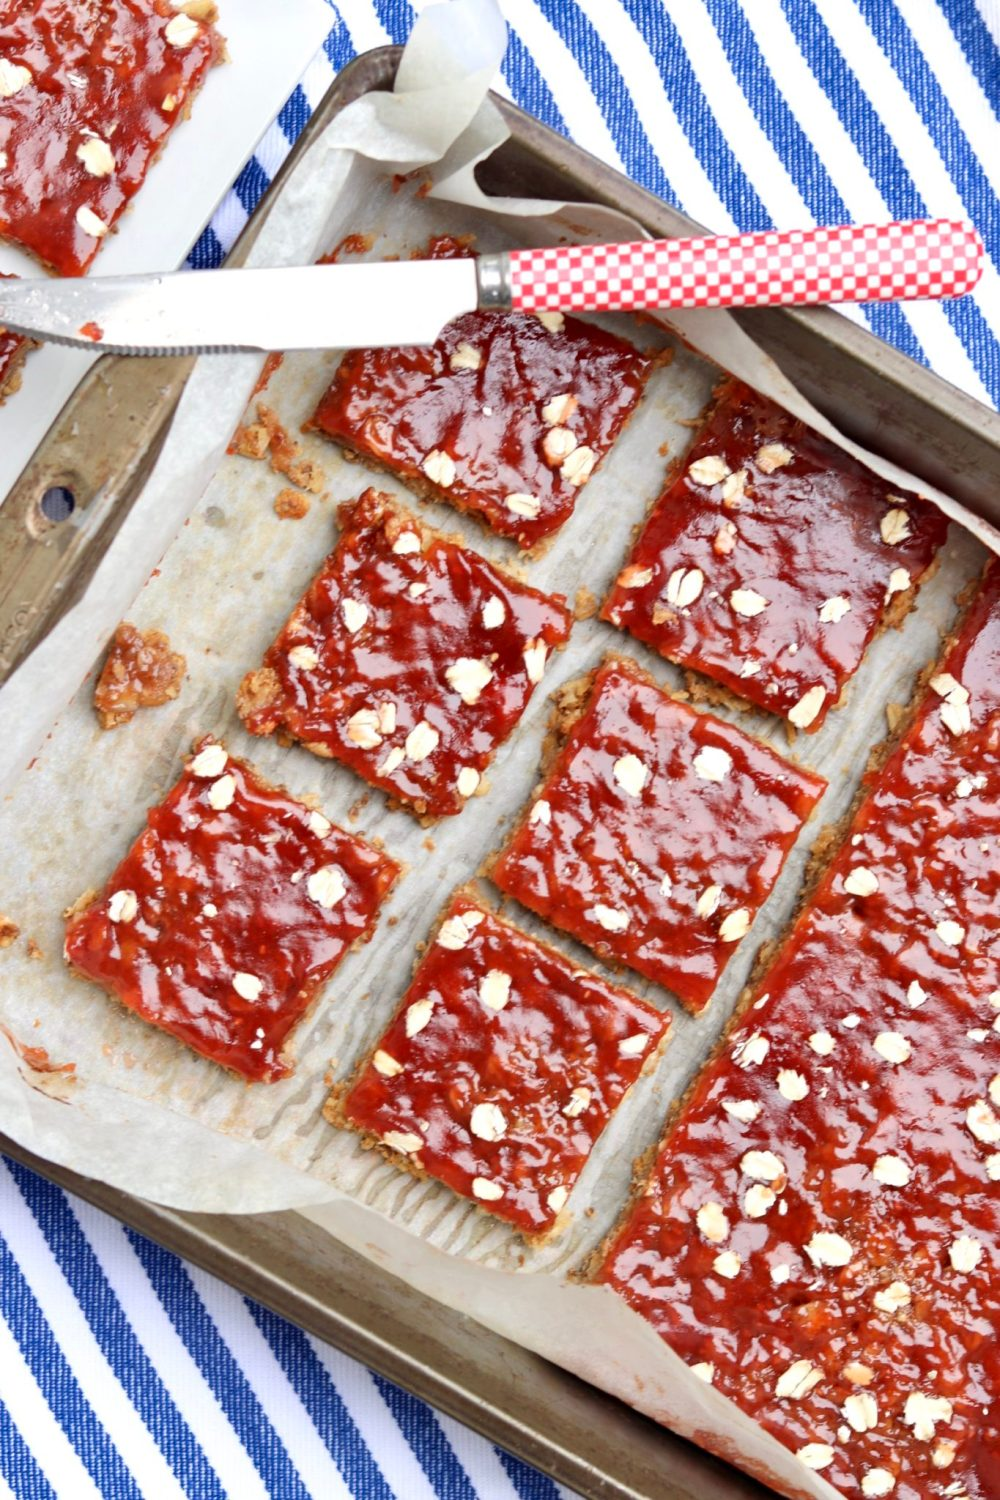 PB&J Breakfast Bars -Healthy, filling and easy to make, Rachel Ray herselfthinks these tasty bars are a total win!Convenient for grab-and-go breakfasts and anytime snacking.